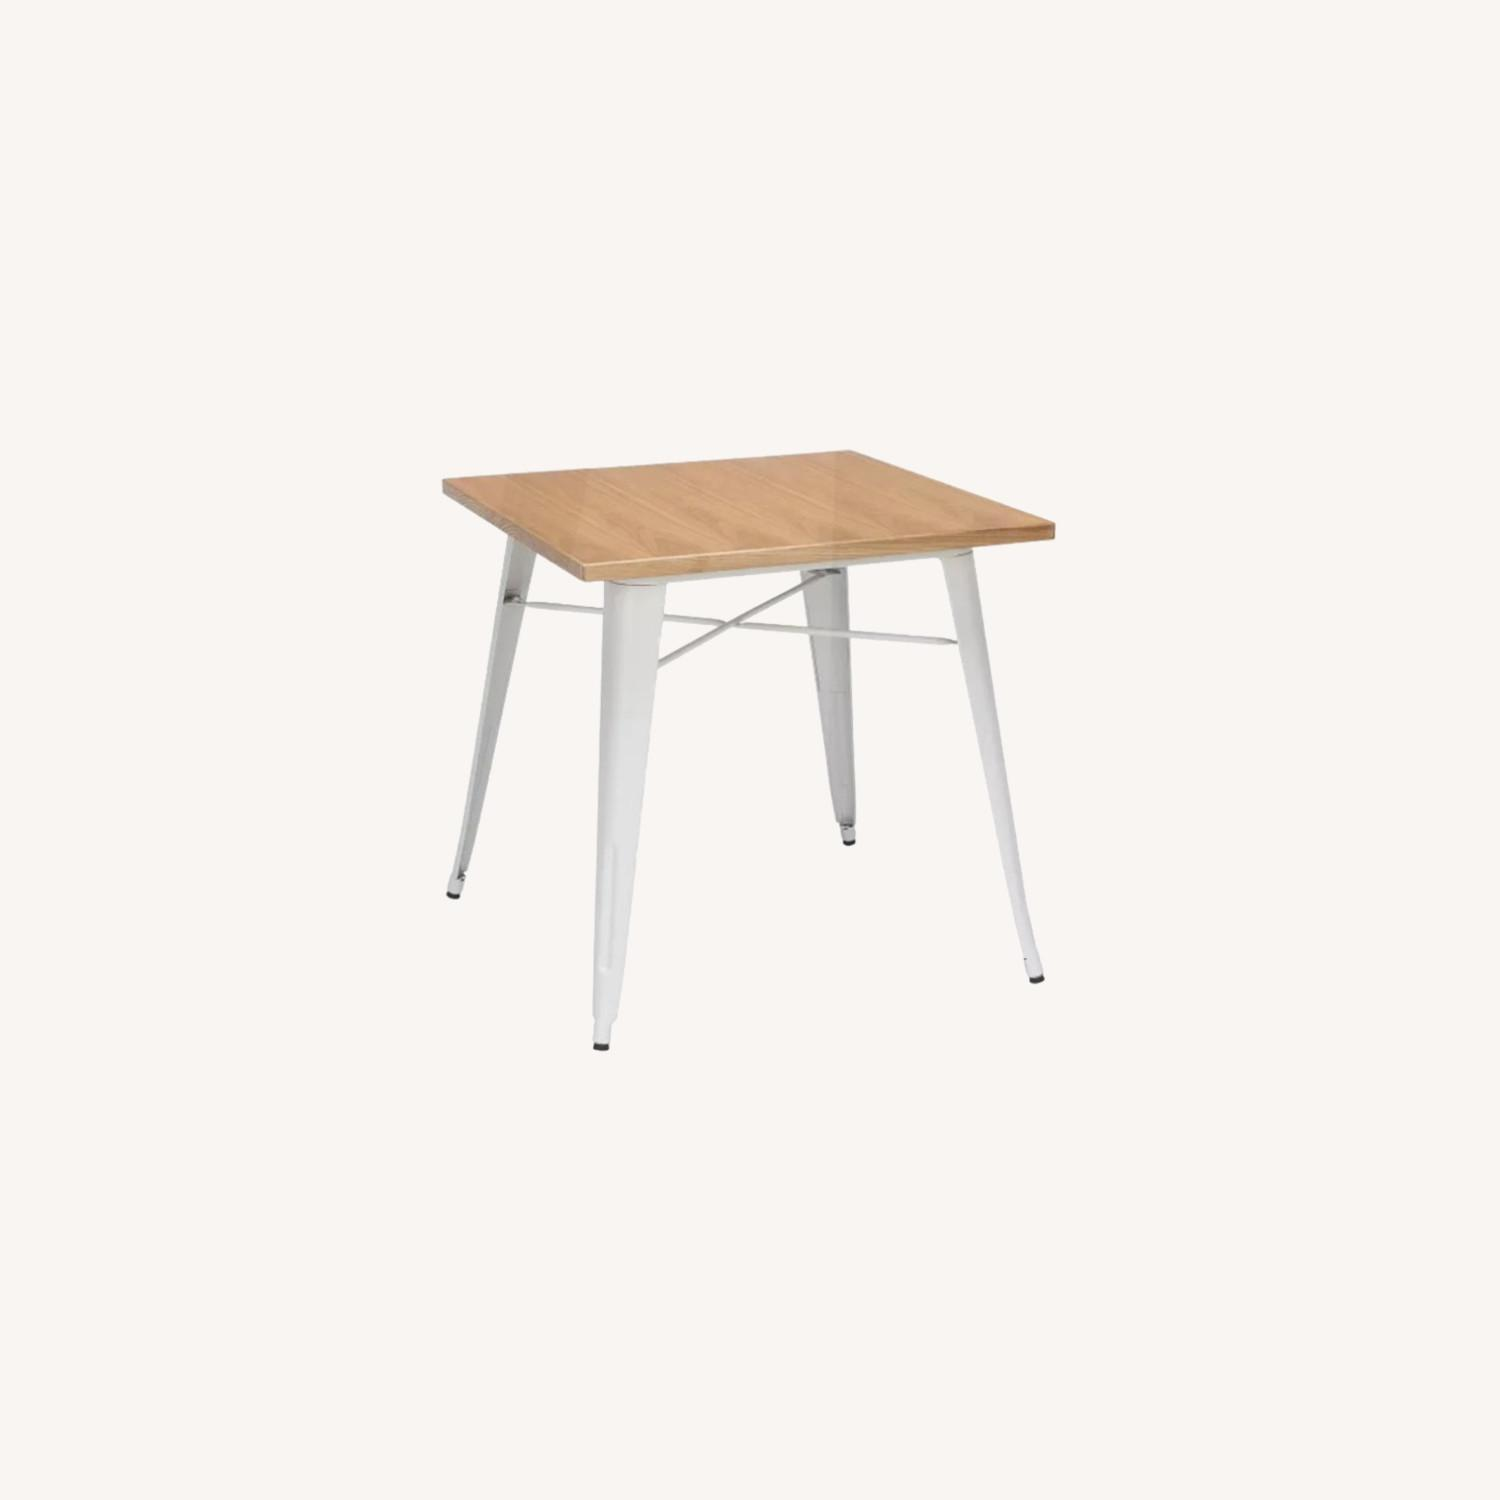 Wood and Metal Modern Square Dining Table - image-0